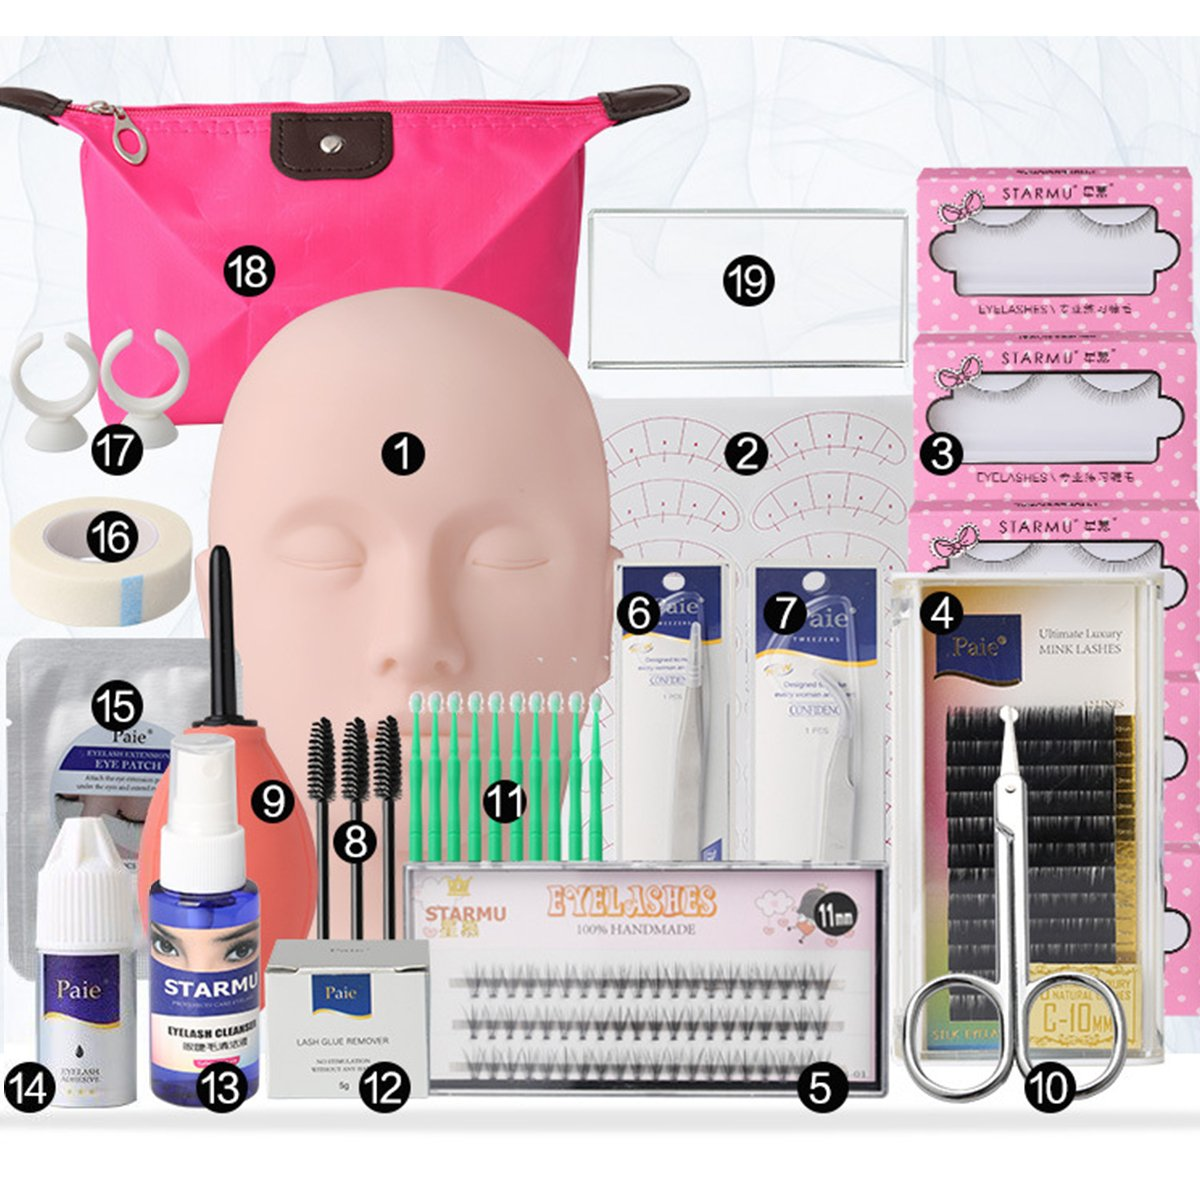 19pcs Eyelash Extension Kits,Professional Mannequin Head Training Eyelashes Extensions Practice Cosmetology Esthetician Supplies with Eye Lashes Glue Tweezers Tools sets for Makeup Practice Eye Lashes